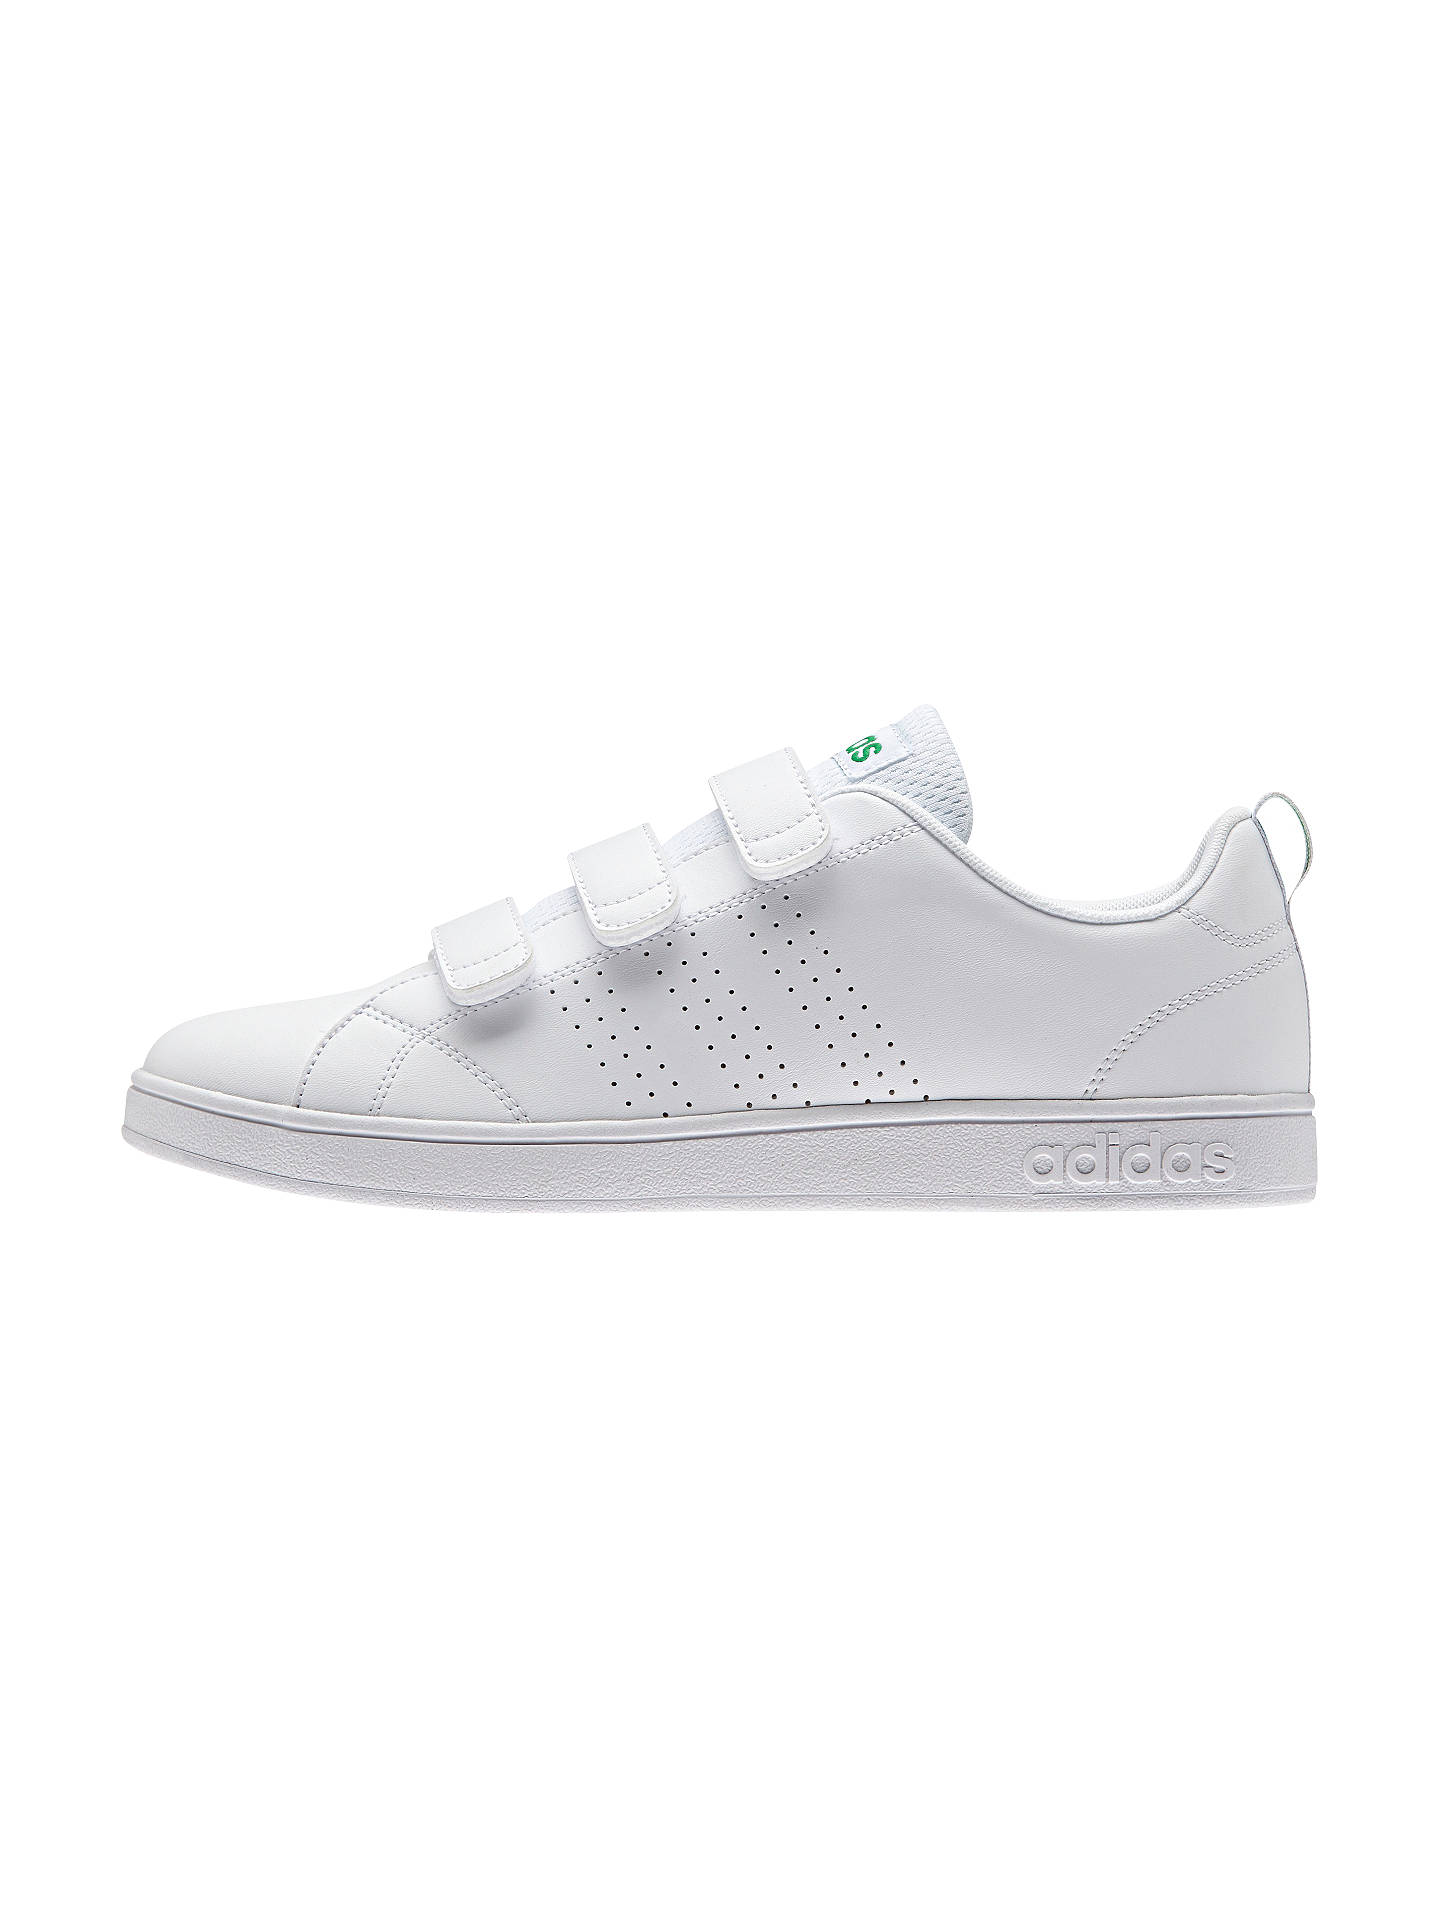 Adidas Neo Advantage Clean 3 Strap Mens Trainers White At John Cleans Black Buyadidas 9 Online Johnlewis